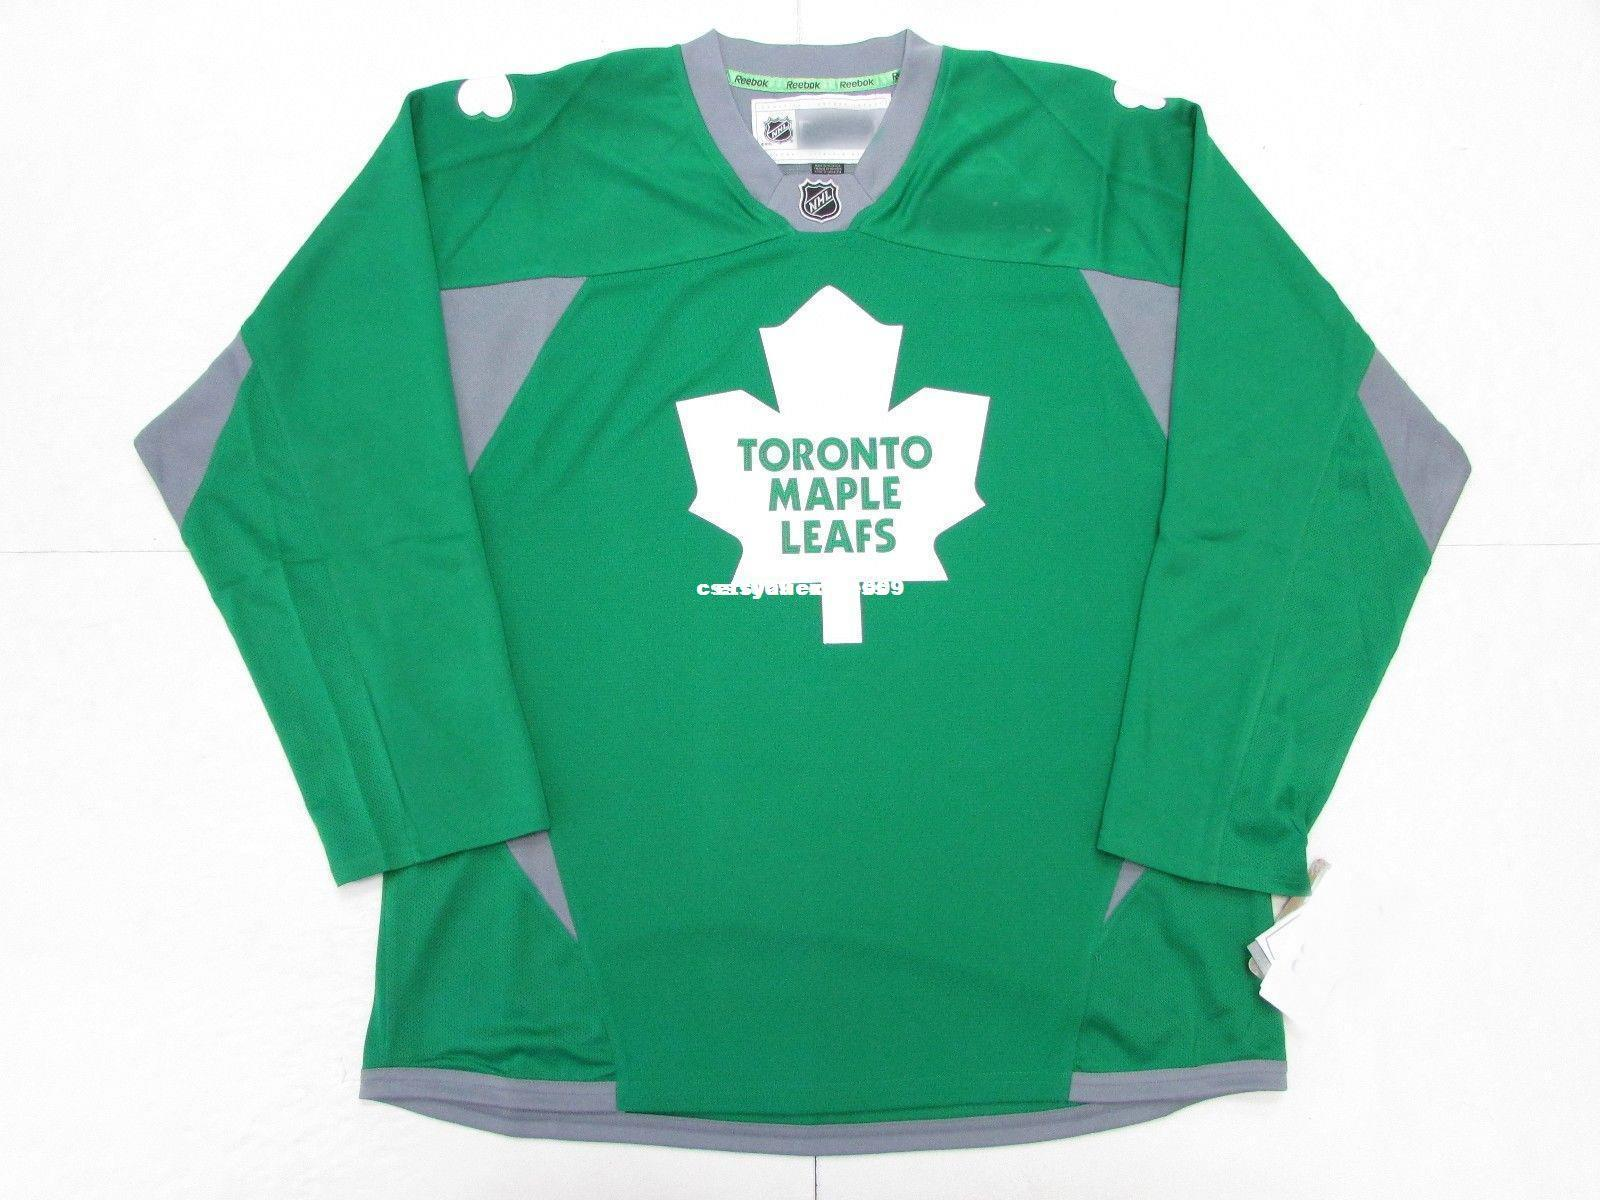 new styles 9b632 13776 Cheap custom TORONTO MAPLE LEAFS ST. PATRICK'S DAY GREEN PRACTICE HOCKEY  JERSEY stitch add any number any name Mens Hockey Jersey XS-6XL